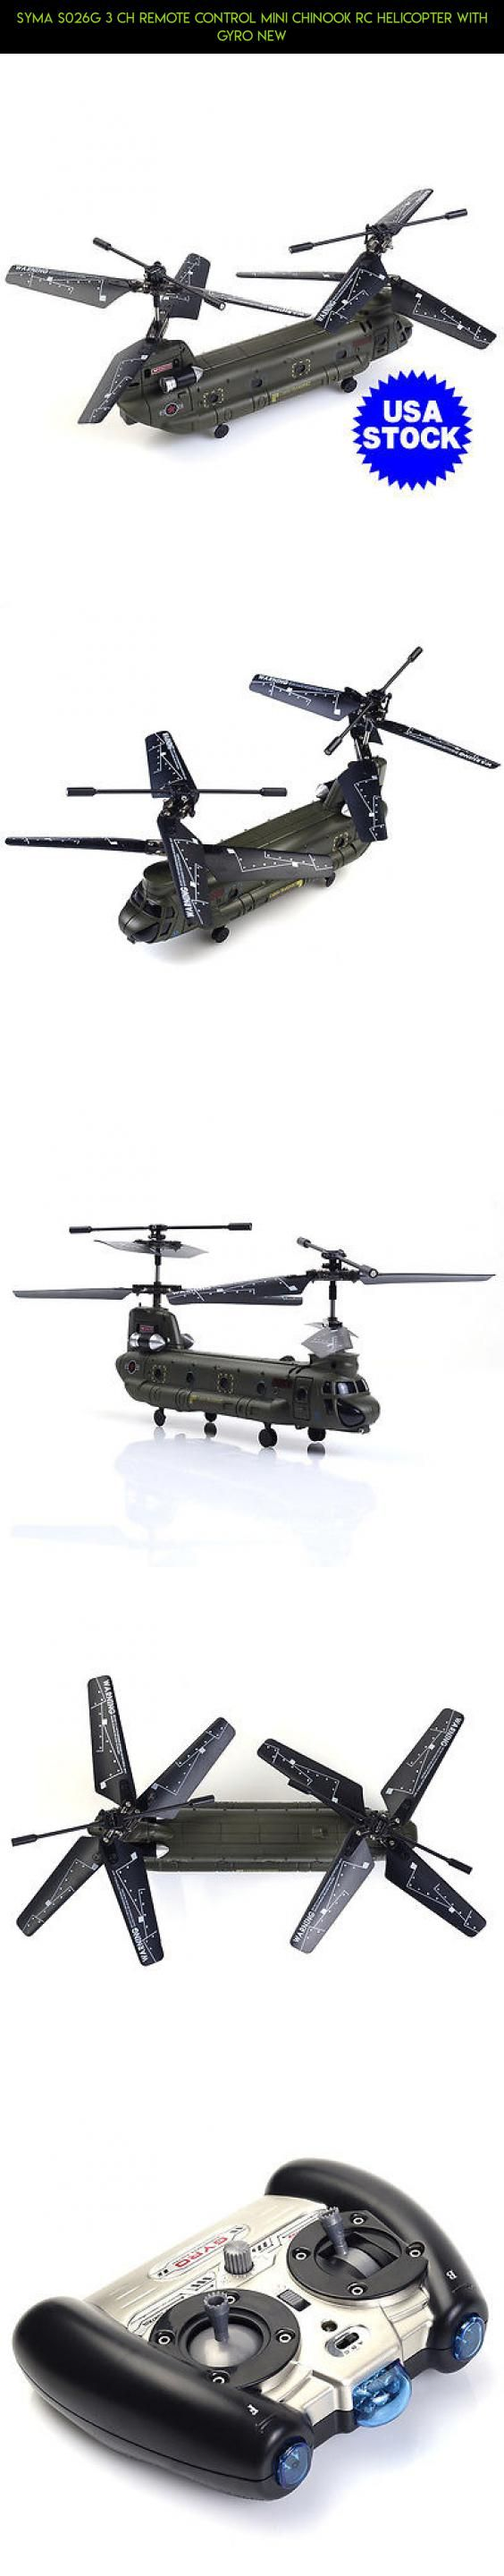 Syma S026G 3 CH Remote Control Mini Chinook RC Helicopter with GYRO New #plans #fpv #tech #parts #products #camera #syma #kit #drone #gadgets #chinook #racing #shopping #technology